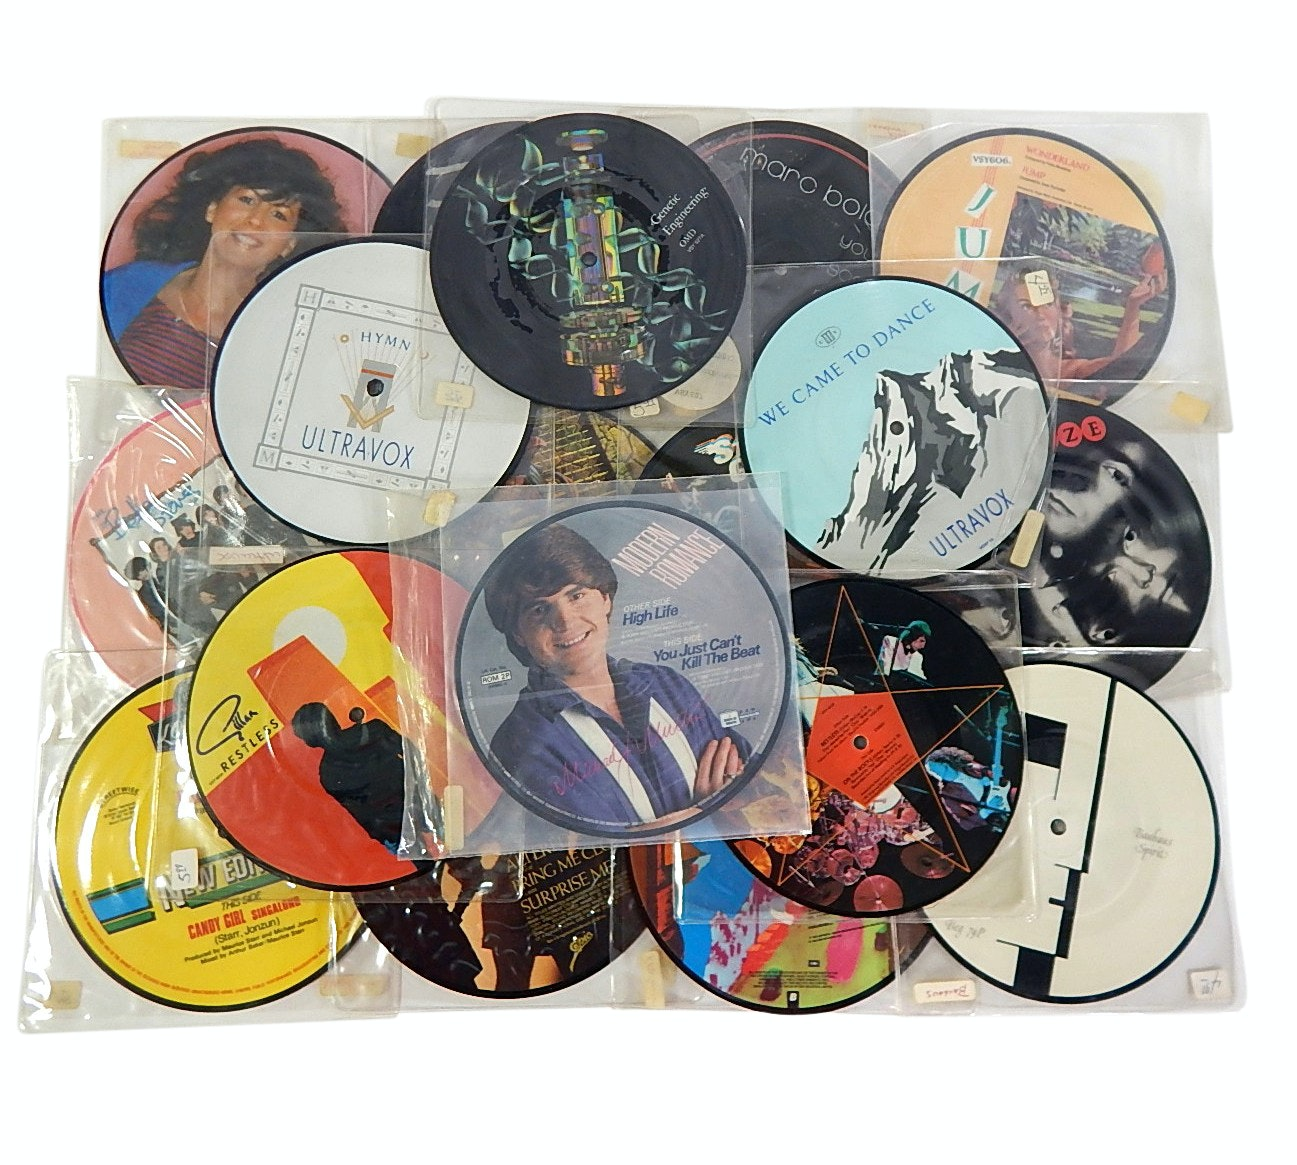 1980s 45 RPM Picture Disc Record Albums with Ultravox, OMD, Gillan